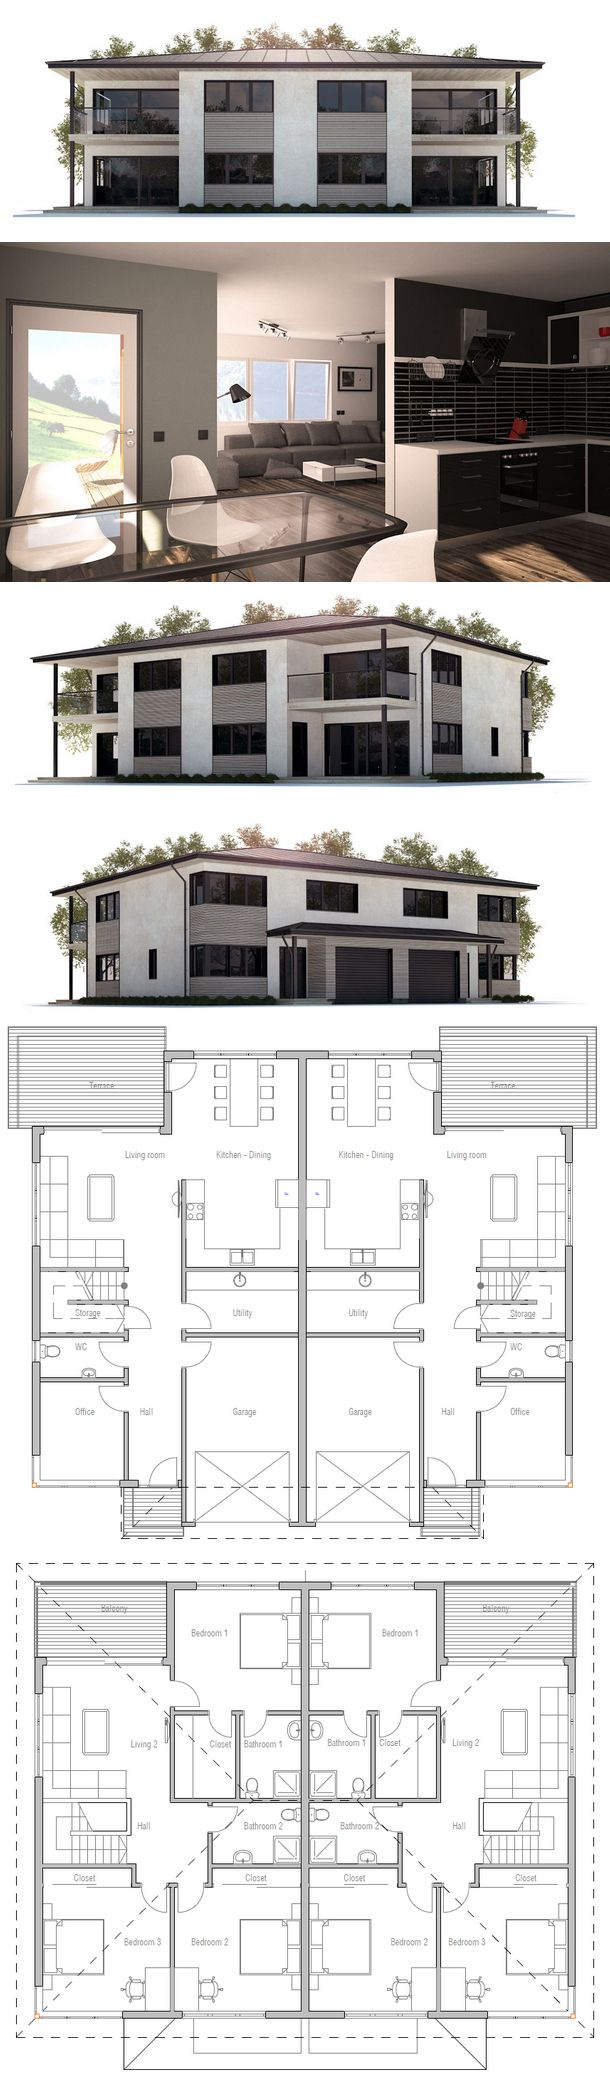 Duplex House Plan CH177D from ConceptHome.com More